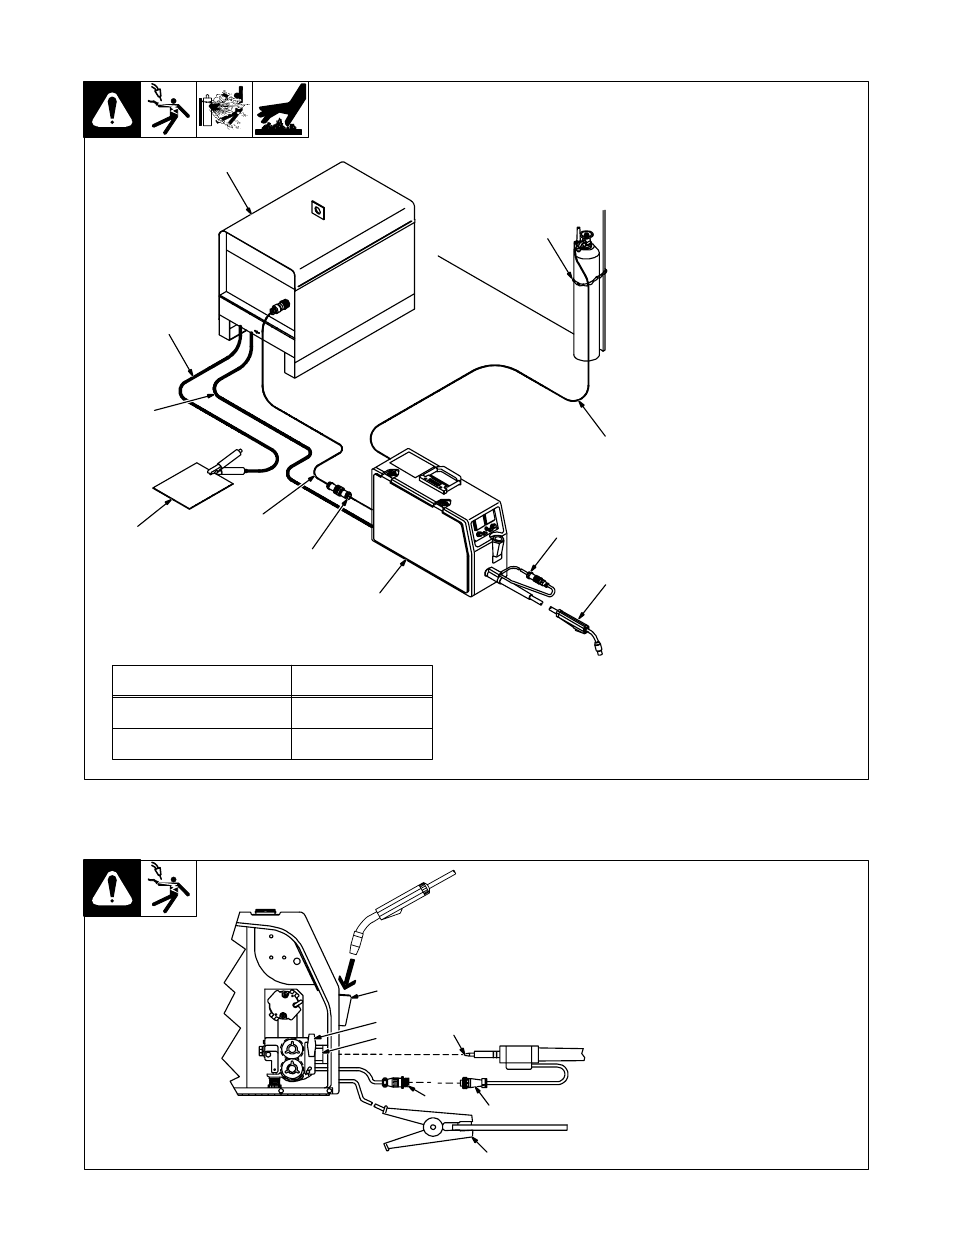 hight resolution of 2 equipment connection diagram miller electric s 22p12 user manual page 15 28